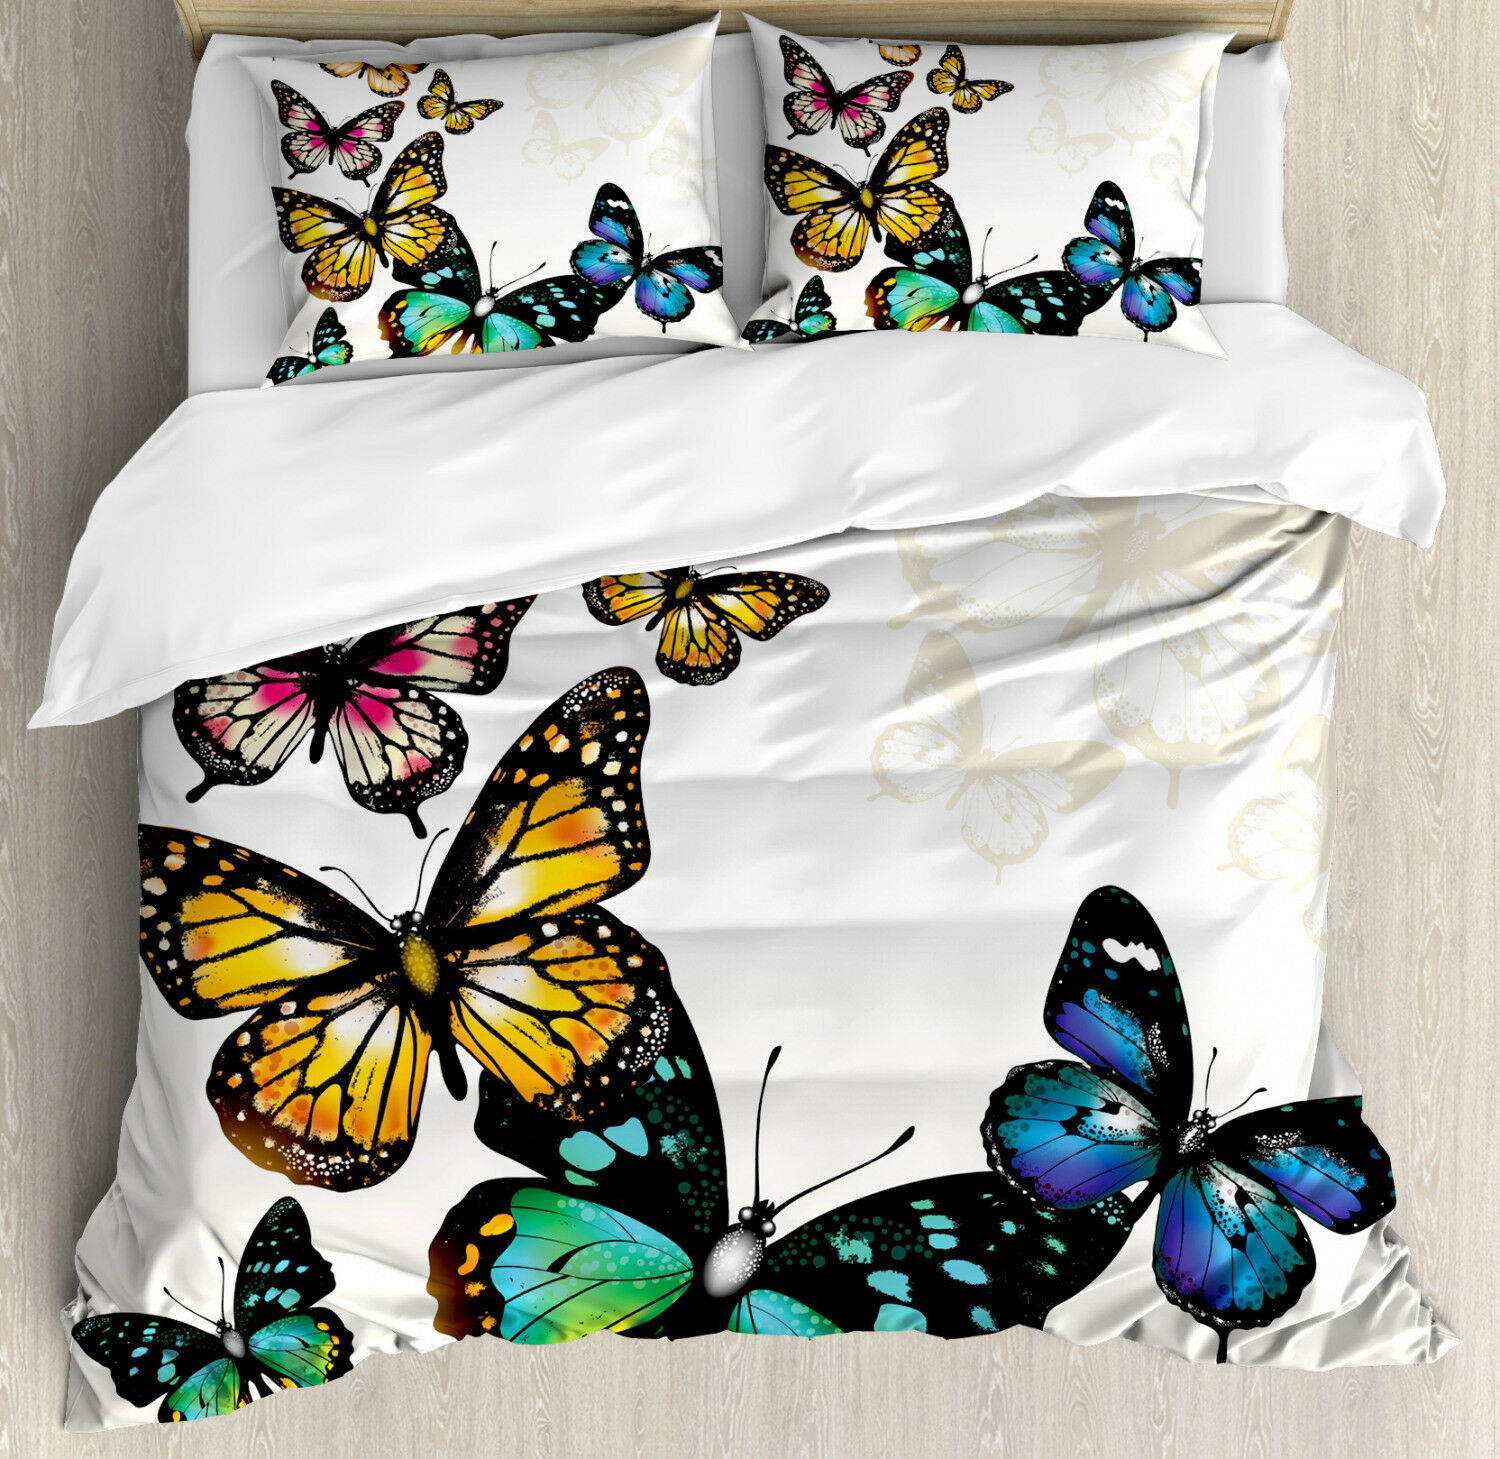 Coloreeful Duvet Cover Set with Pillow Shams Monarch Shades Ombre Print